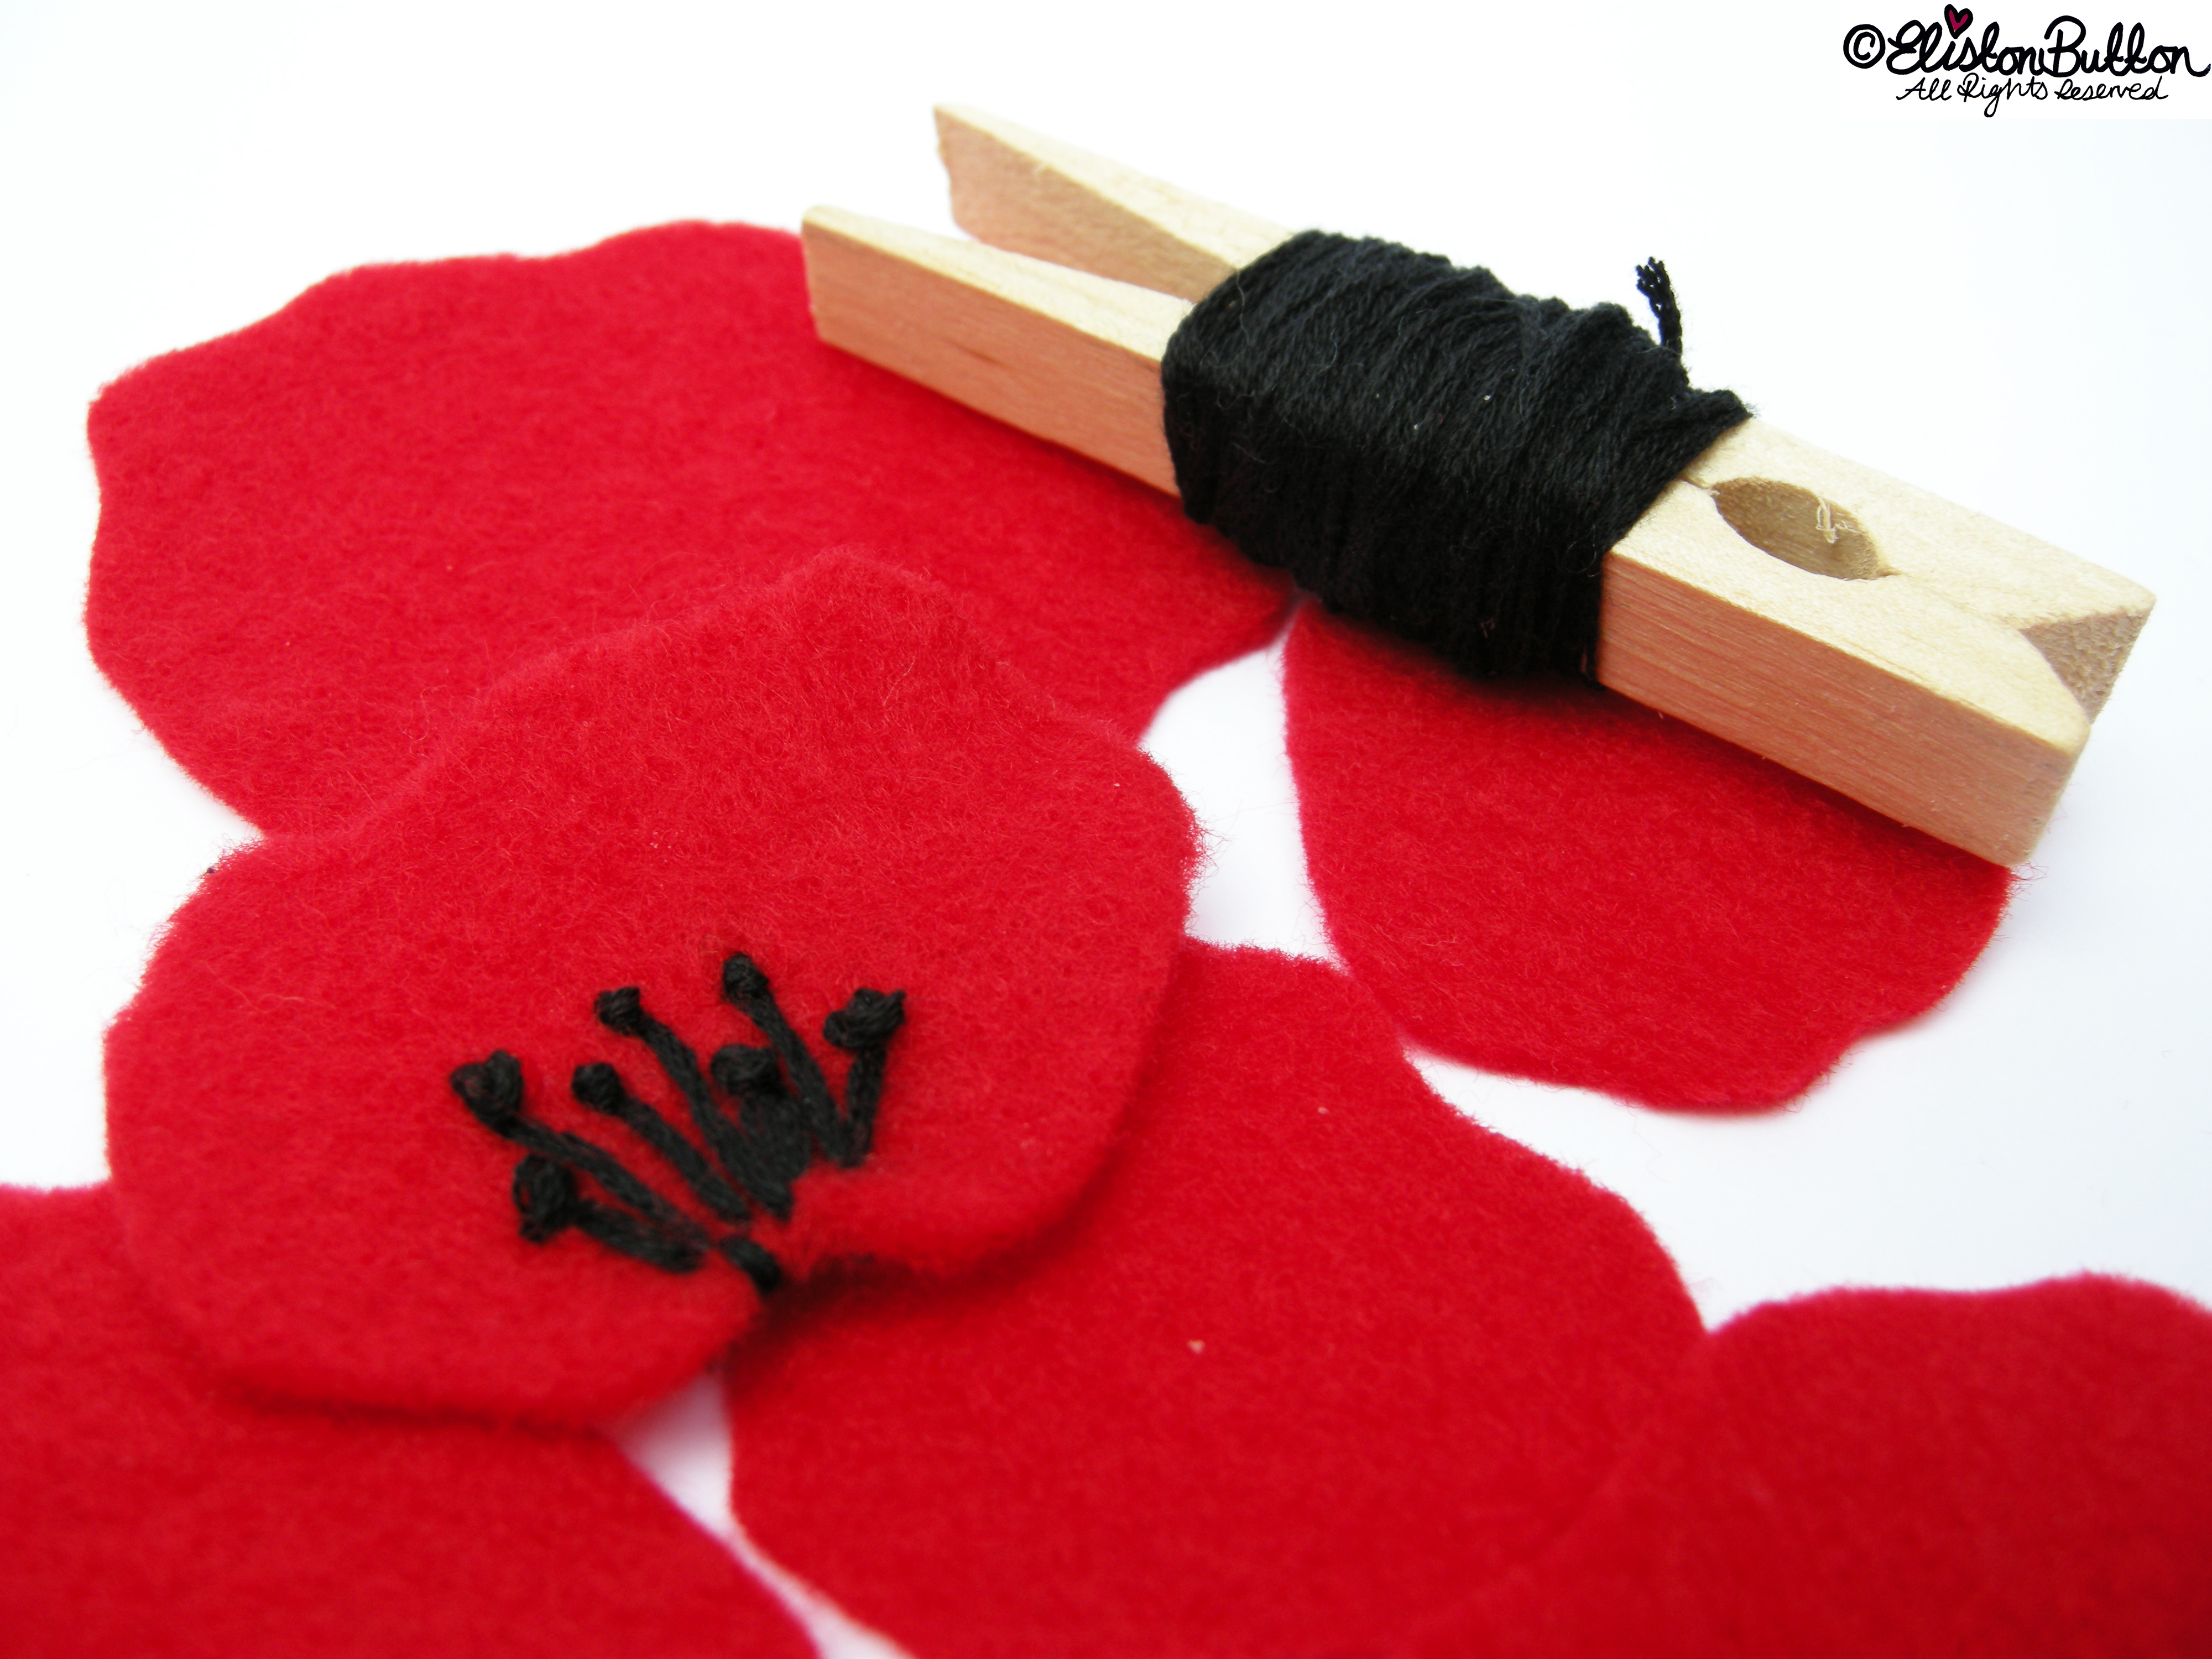 Straight Stitches and French Knots Forming the Centre of the Poppy Petal - 27 Before 27 – Poppy at www.elistonbutton.com - Eliston Button - That Crafty Kid – Art, Design, Craft & Adventure.